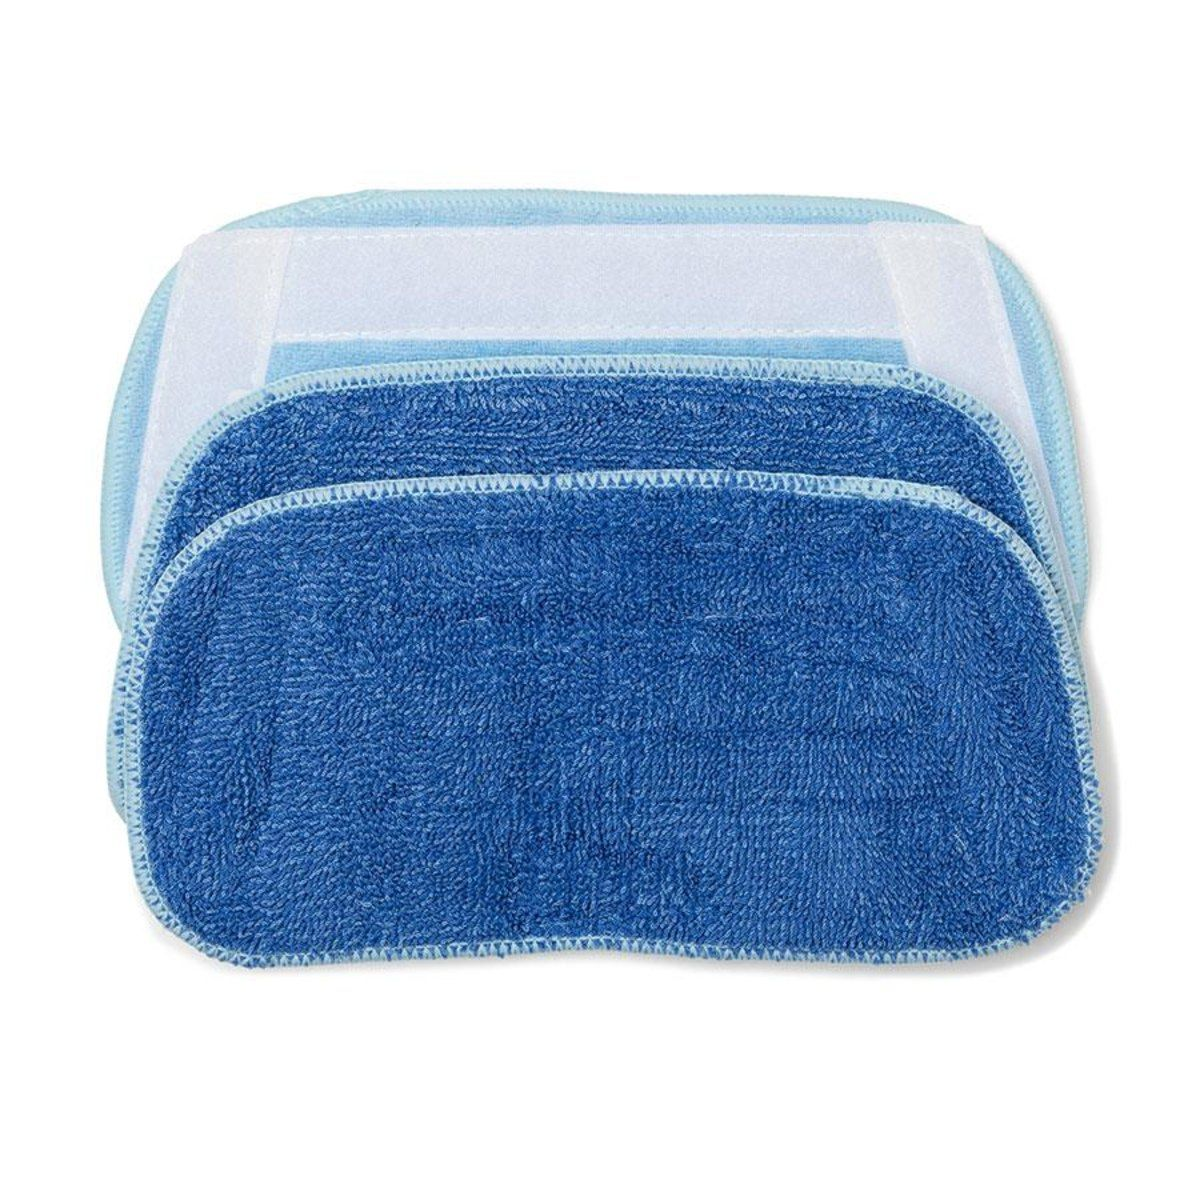 Steam Mop Replacement Pads Set Of 3 Kmart Steam Mop Cleaning Equipment Mops And Brooms